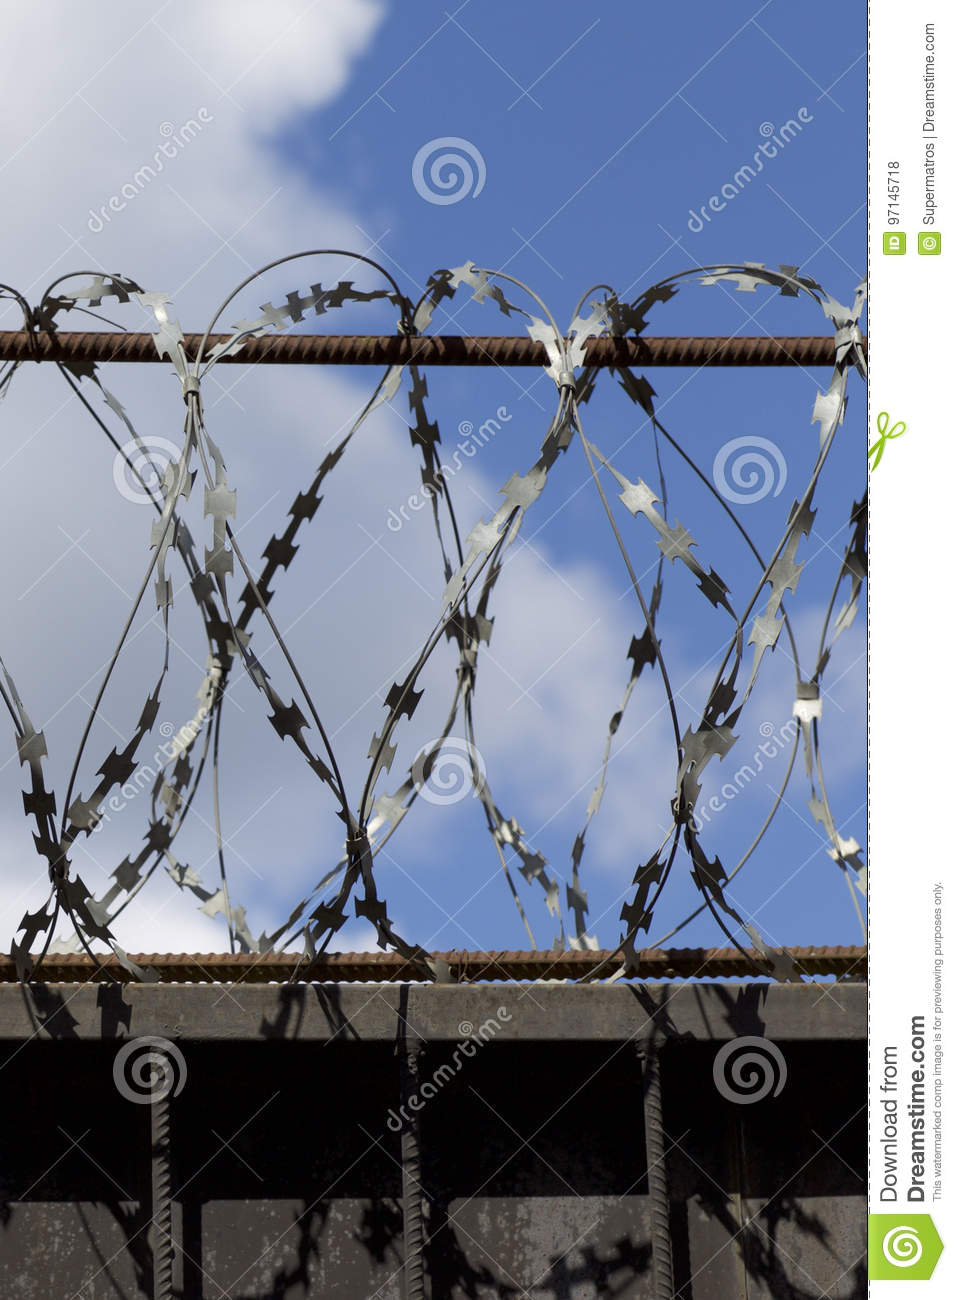 Barbed Wire Wound To The Top Of A Fence Stock Photo - Image: 97145718